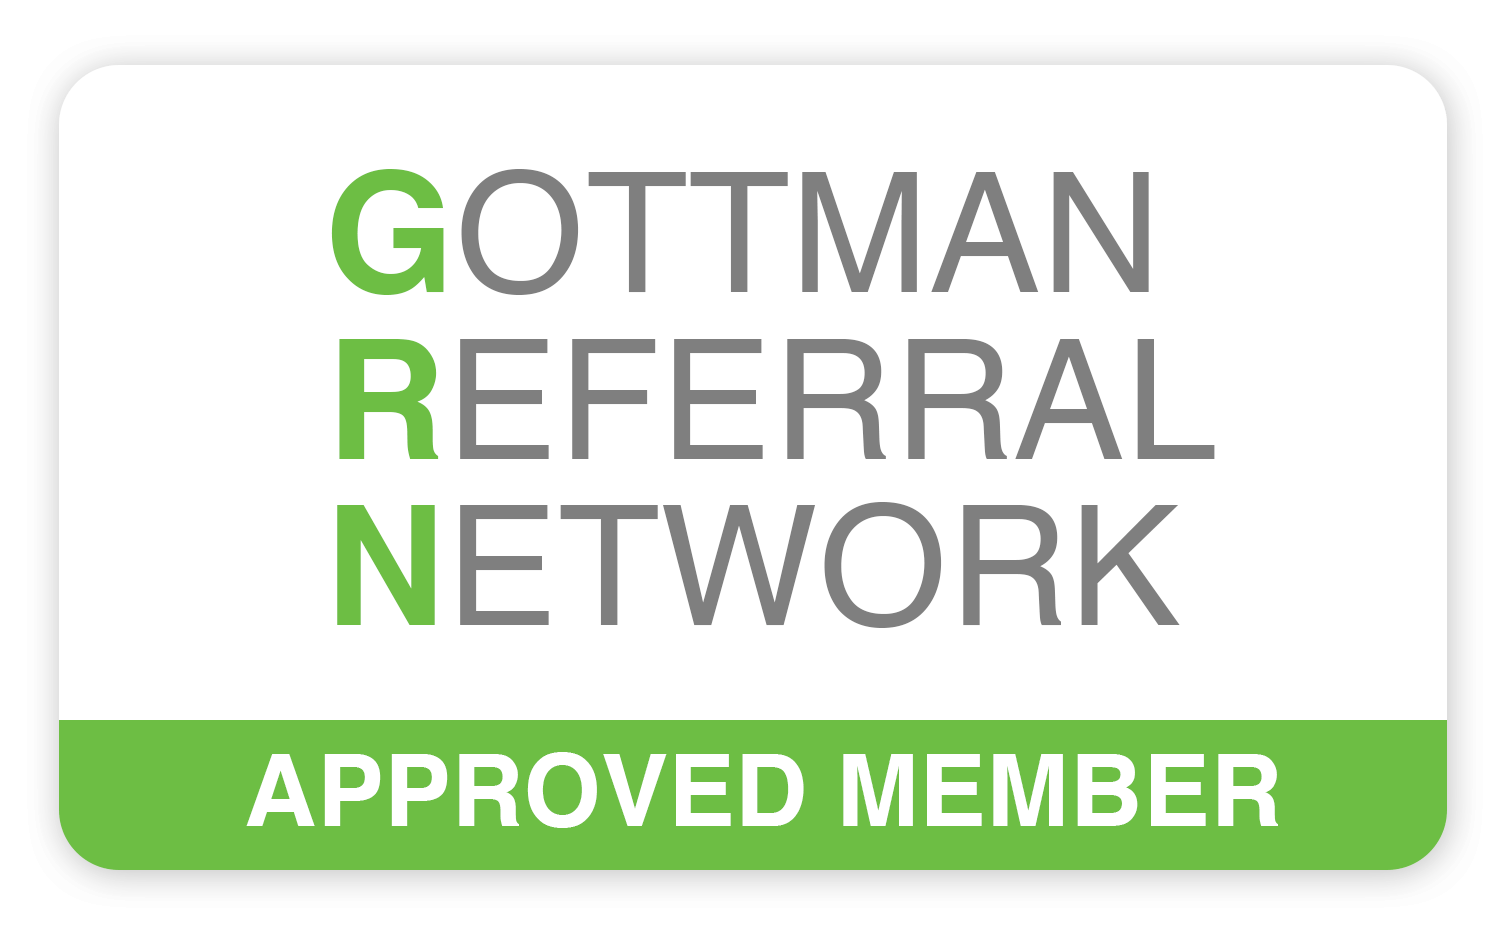 Rebecca Lanier's profile on the Gottman Referral Network